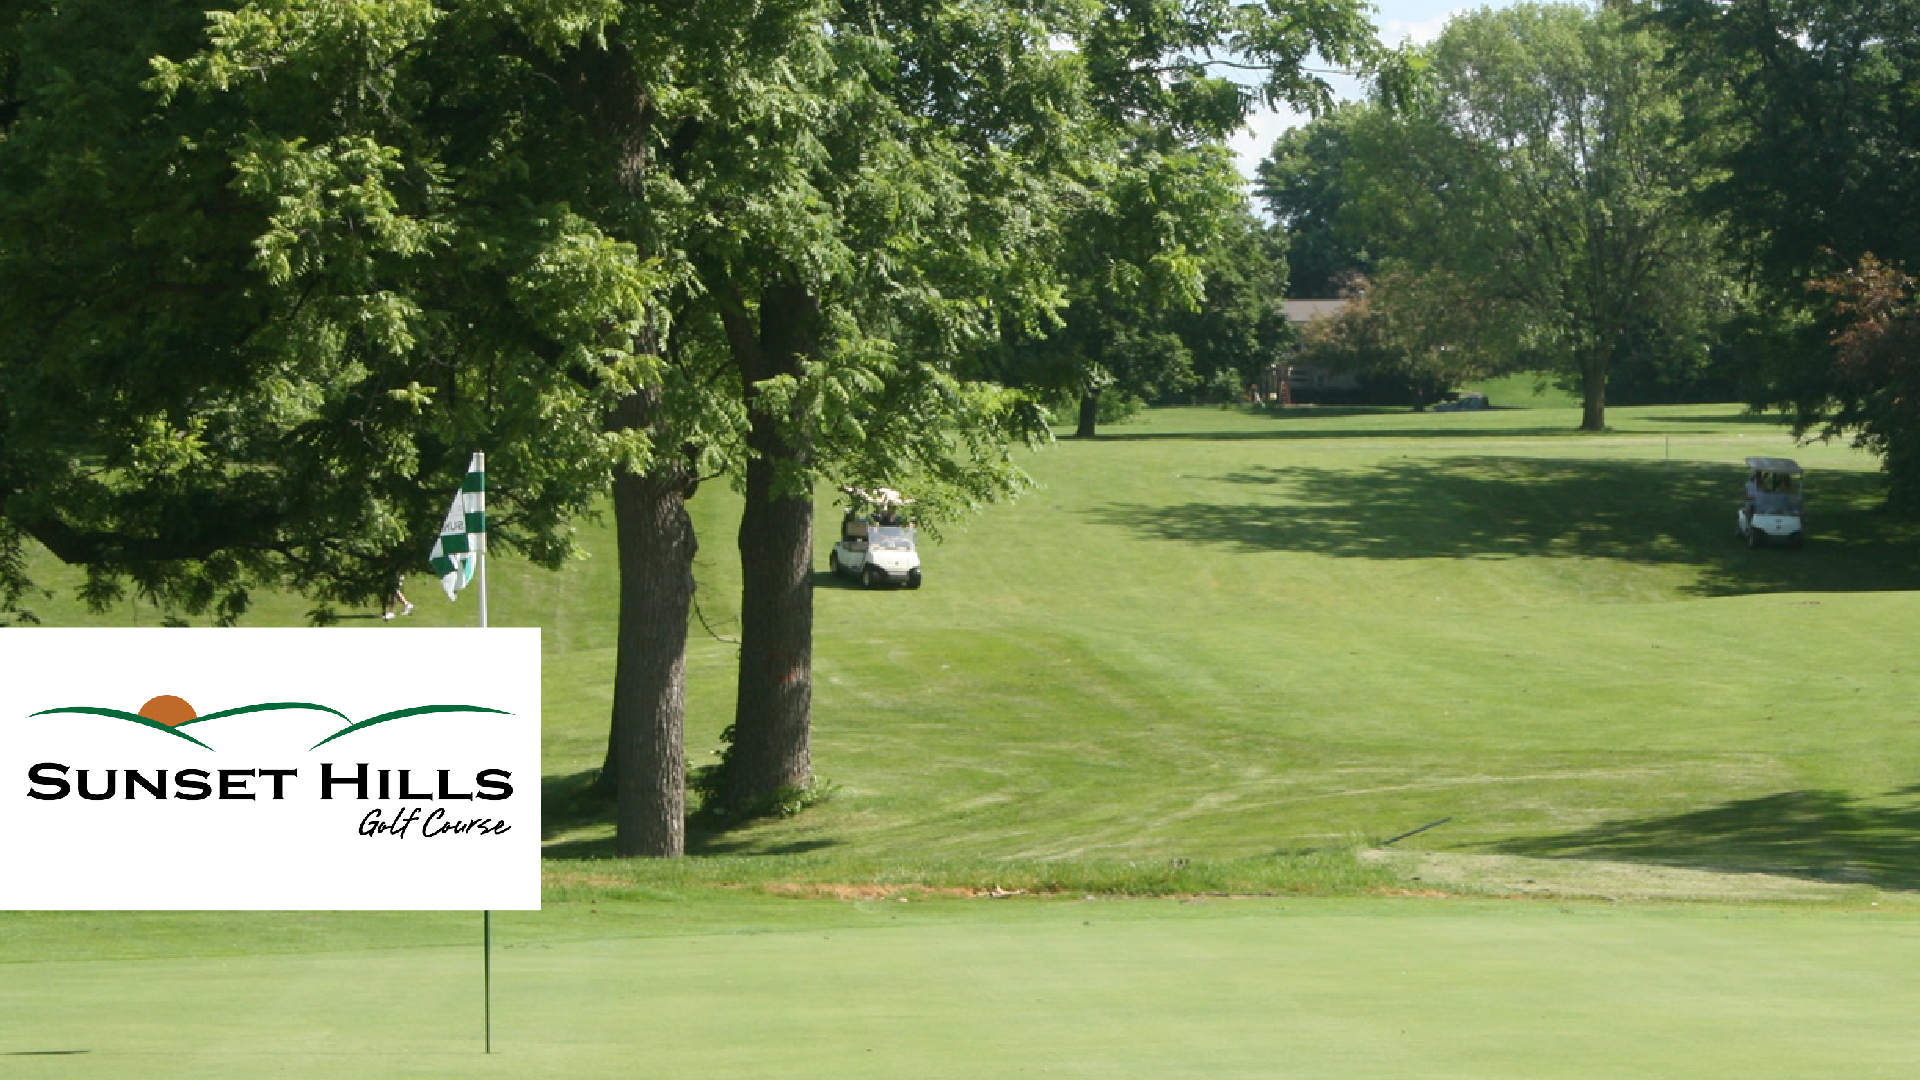 Sunset Hills Golf Course - Green Golf Partners - Managed Facilities